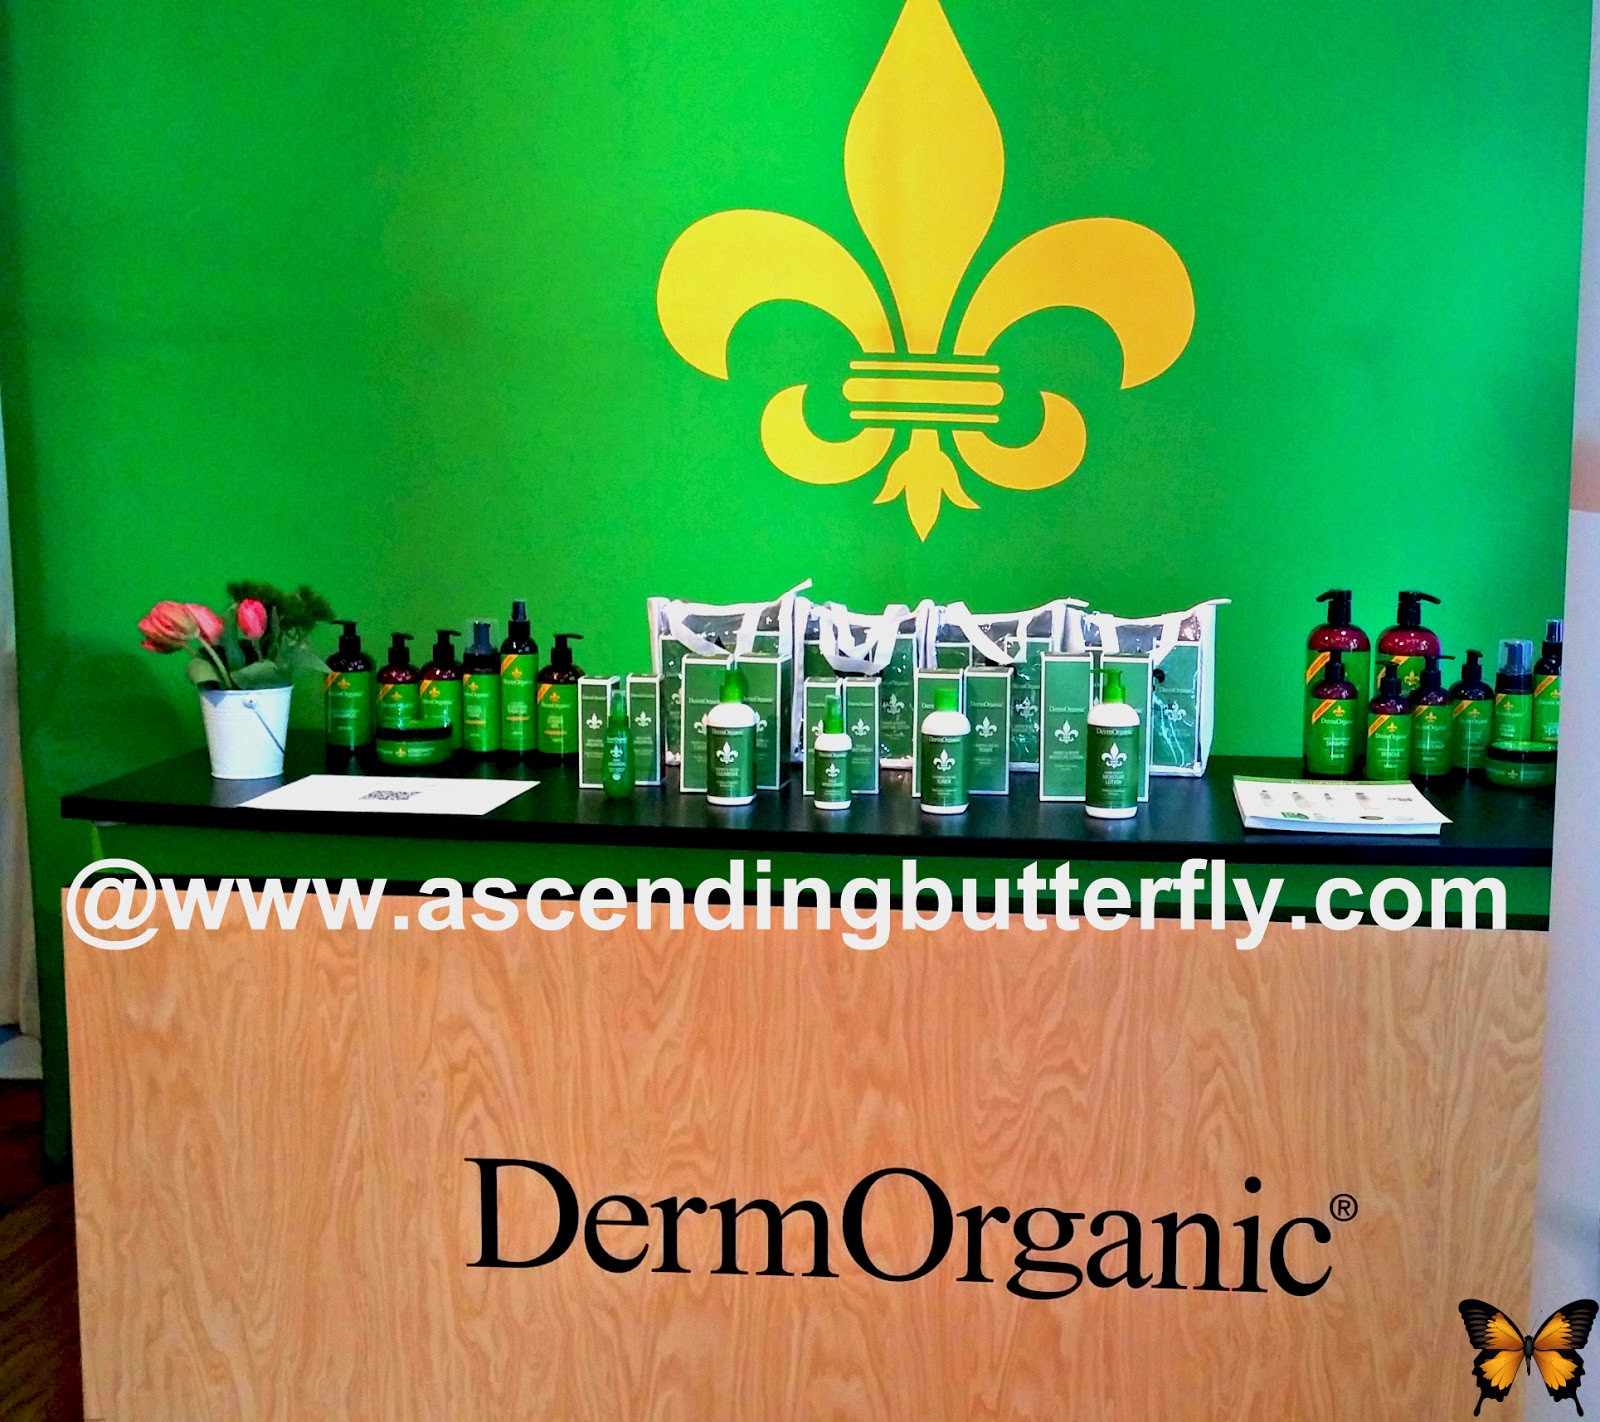 DermOrganic Display at BeautyPress Spotlight Day February 2014